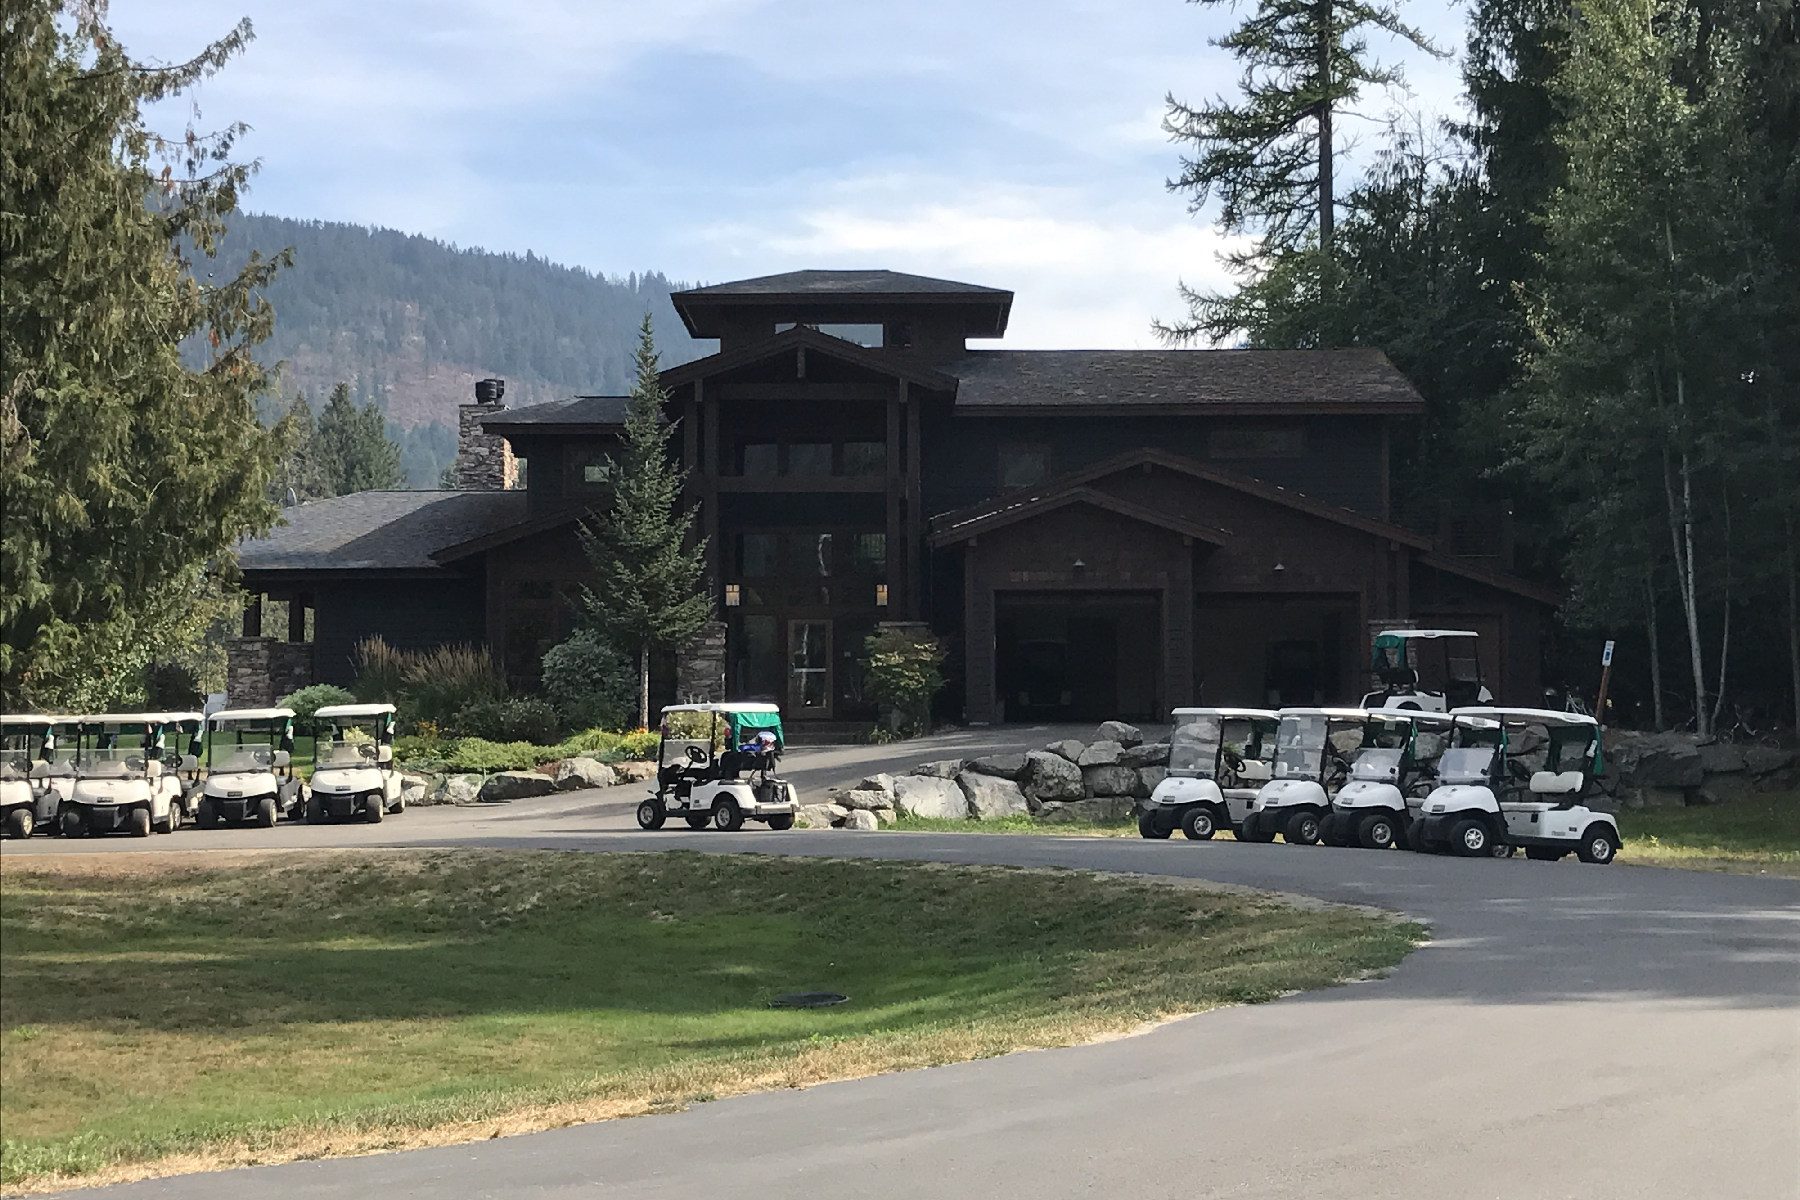 Additional photo for property listing at Idaho Club Golf Community Lot 2 Blk 2 Marie Victoria Court Sandpoint, Idaho 83864 United States